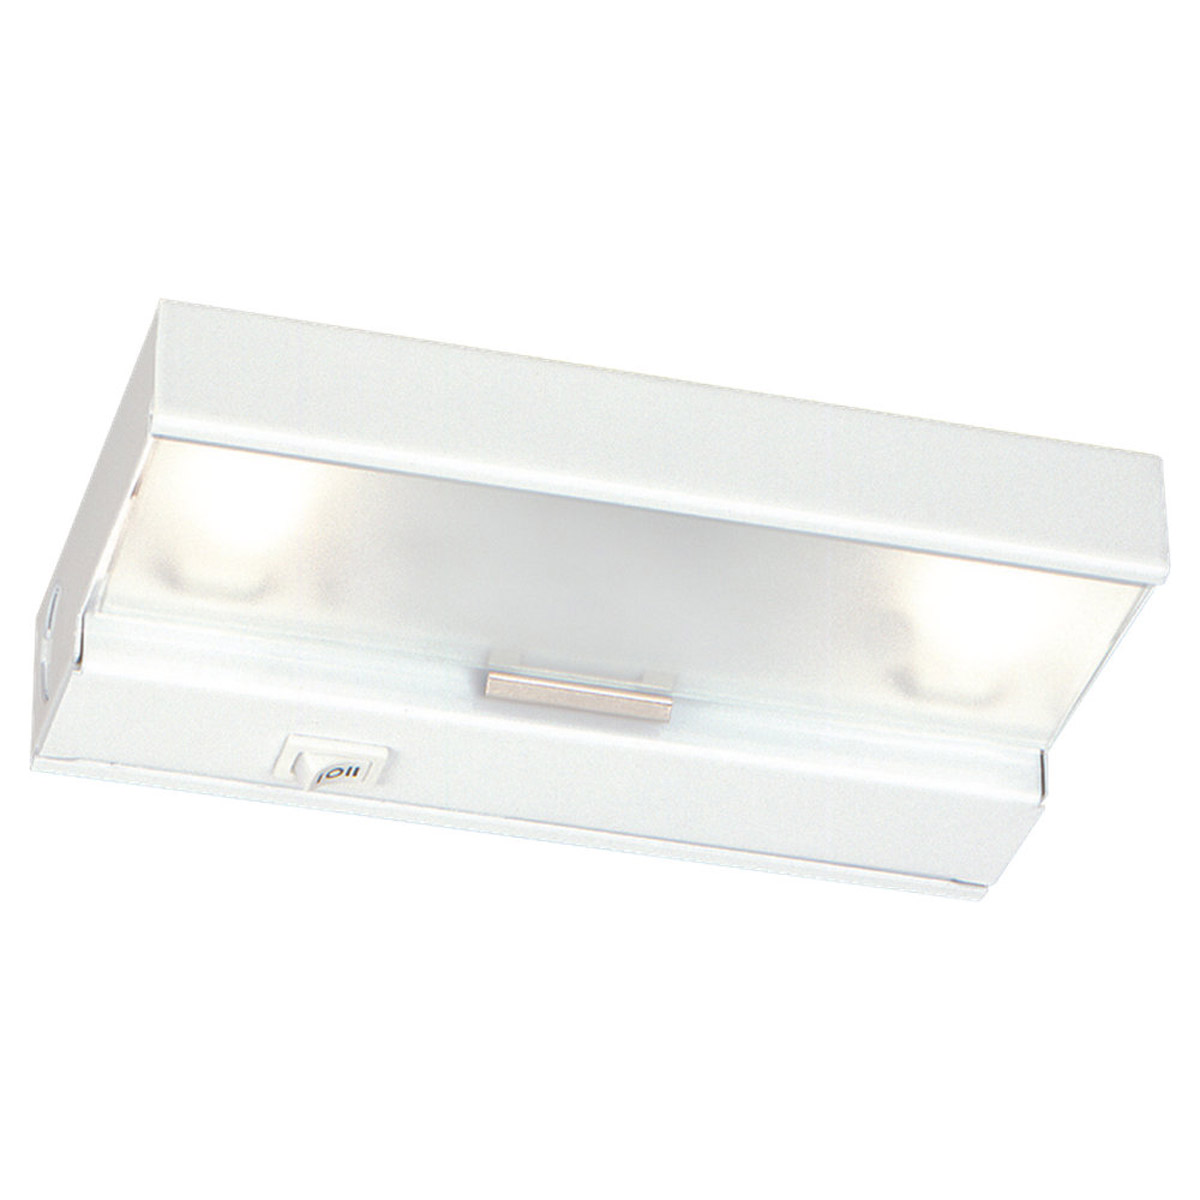 Sea Gull Lighting Undercabinet Lighting 2 Light Undercabinet Xenon in White 98018-15 photo